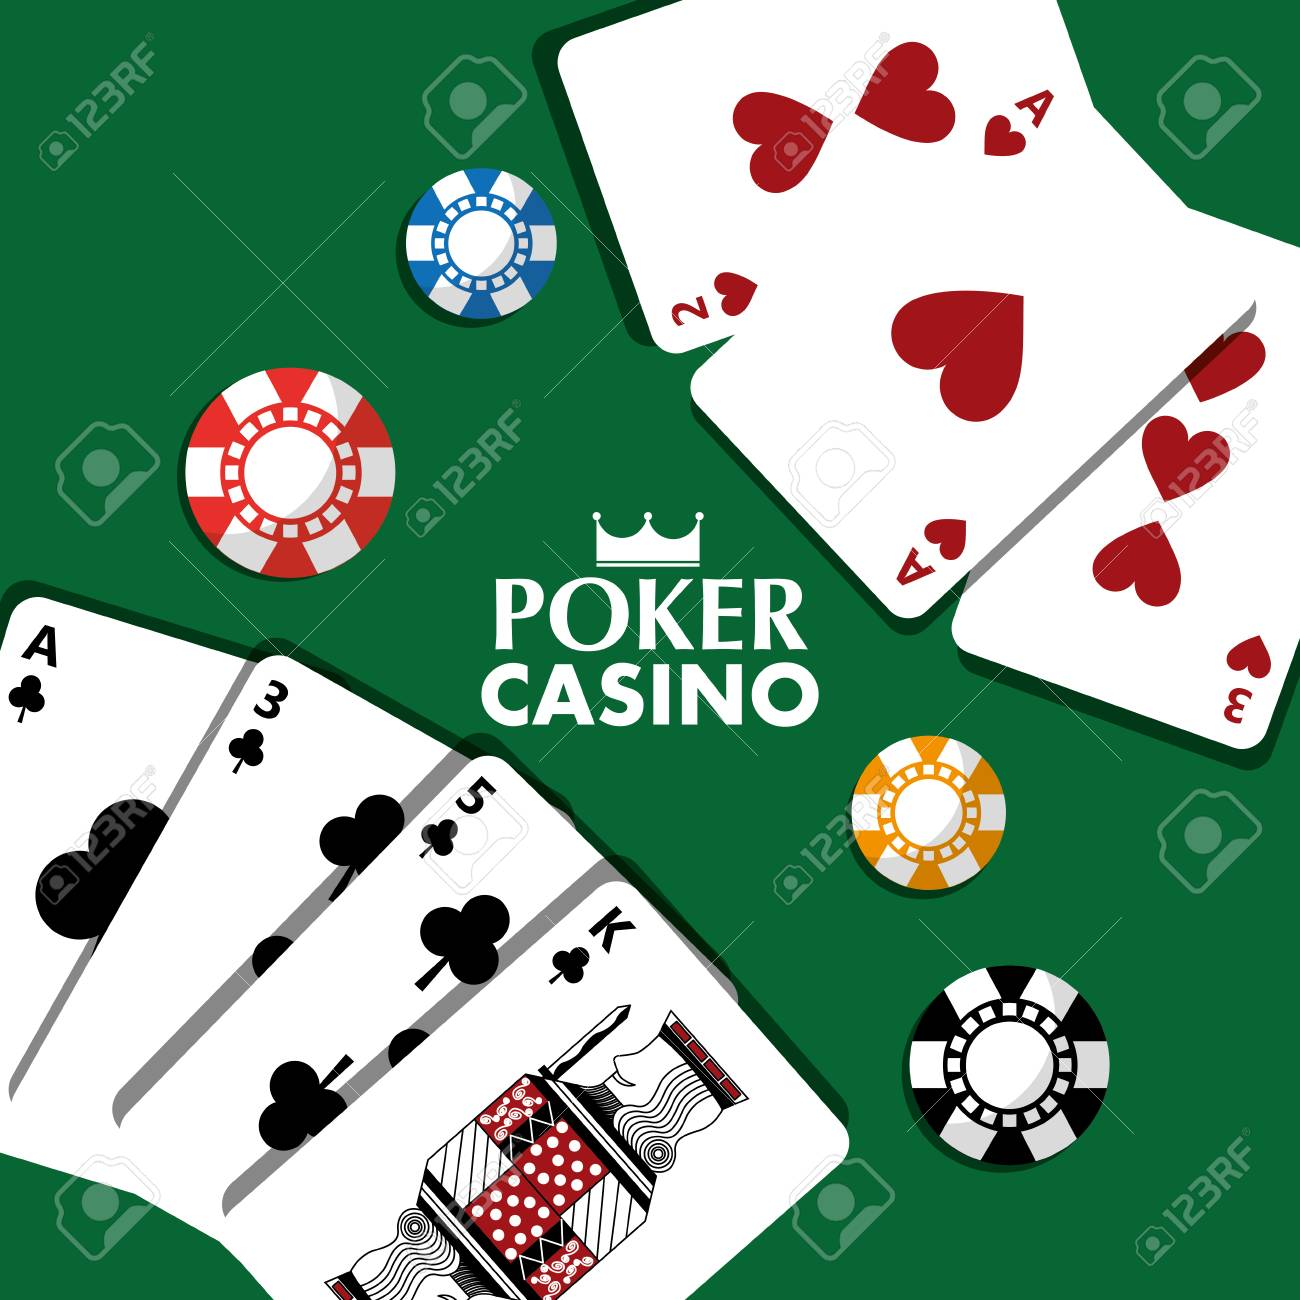 Poker, casino cards and chips vector illustration